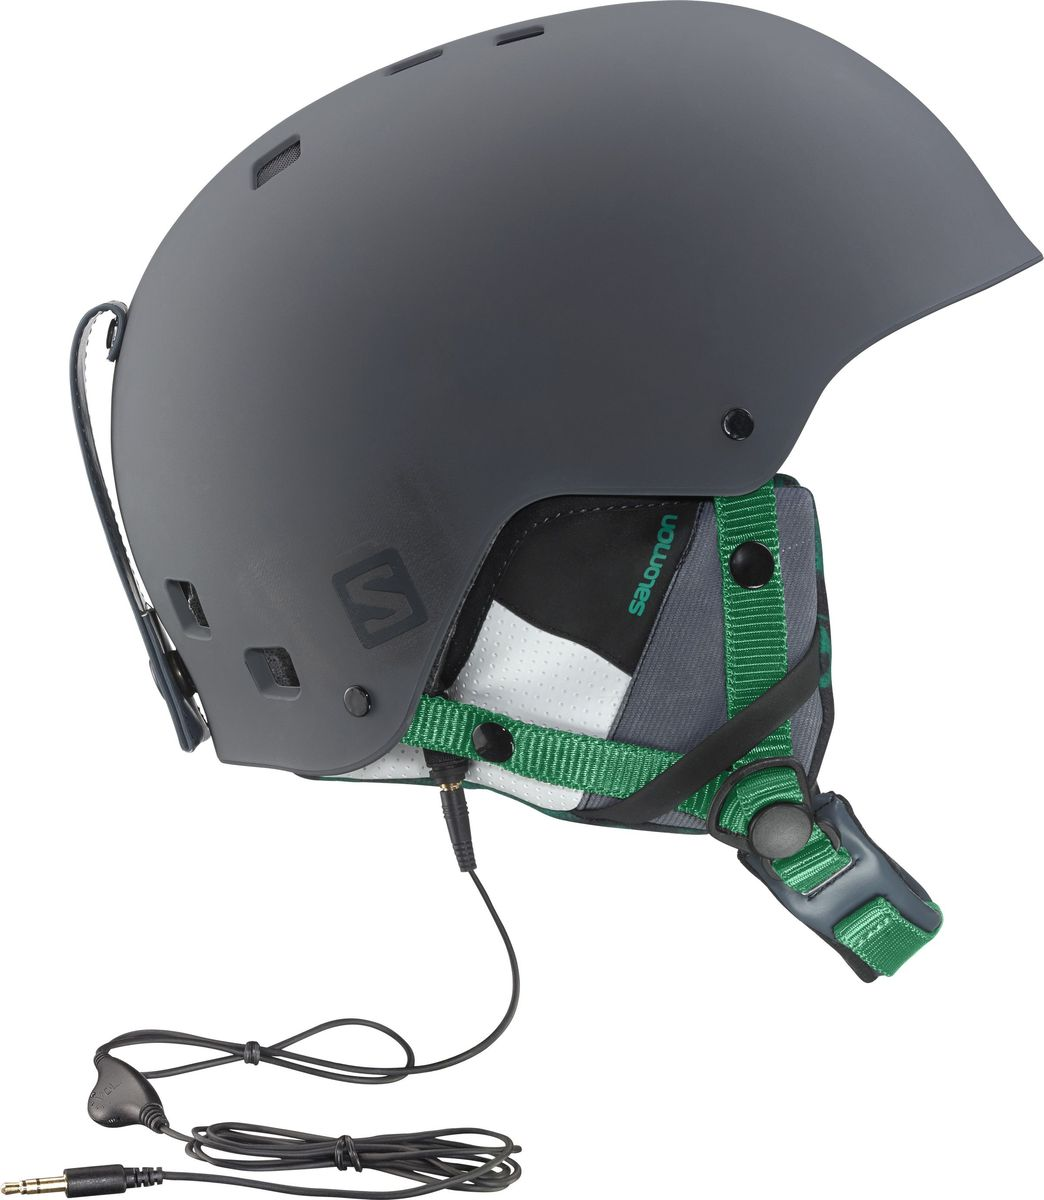 Шлем зимний Salomon  Helmet Brigade Audio Grey/Forest Gr . Размер S (55/56) - Горные лыжи